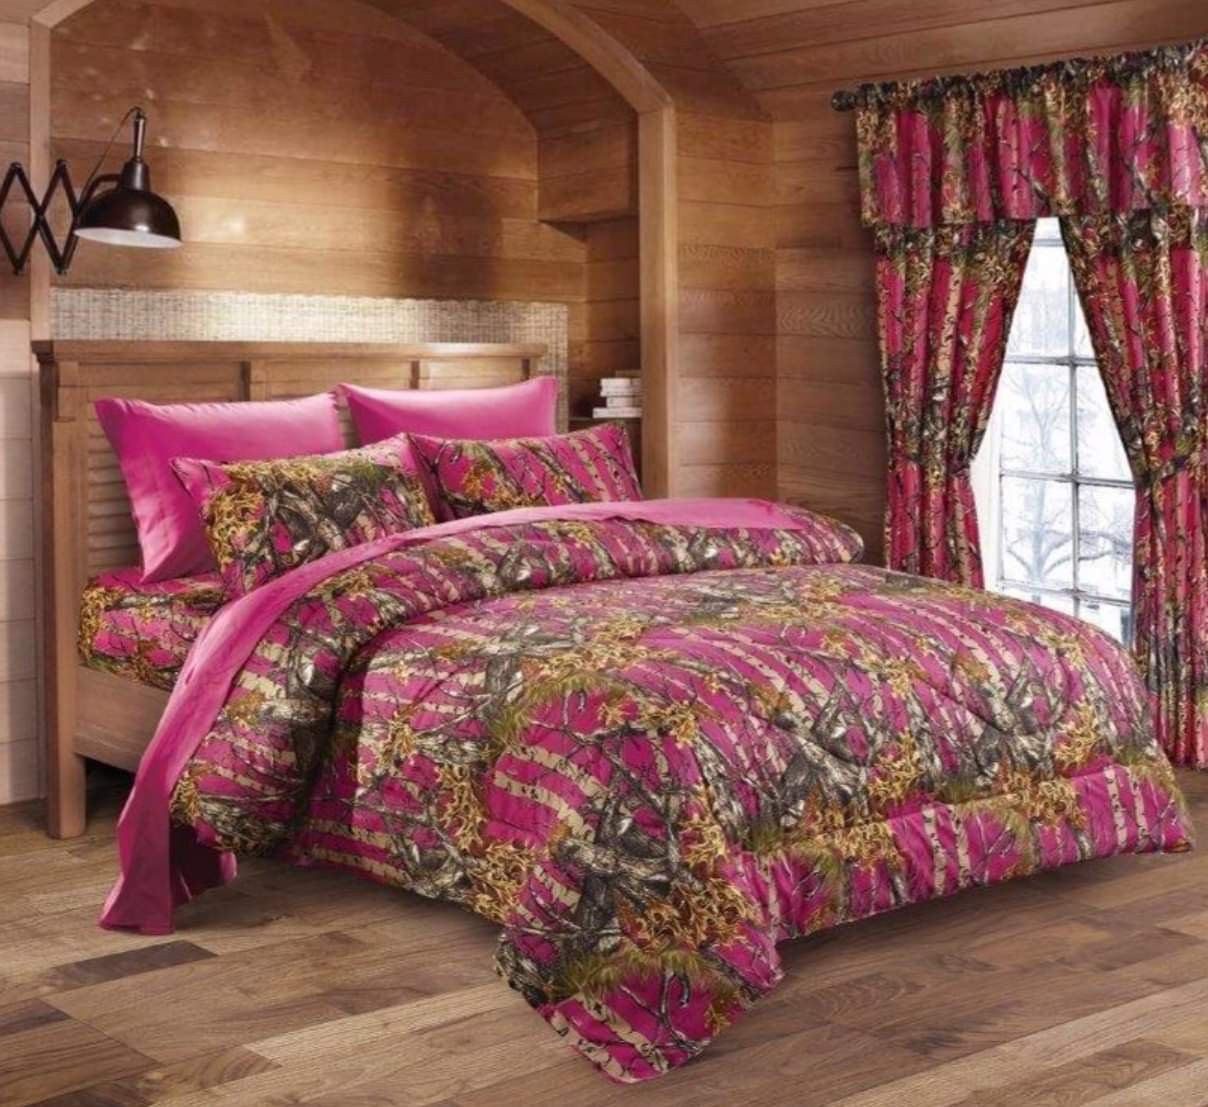 1 PC FULL QUEEN TEAL CAMOUFLAGE COMFORTER THE WOODS CAMO BEDDING WOODLAND